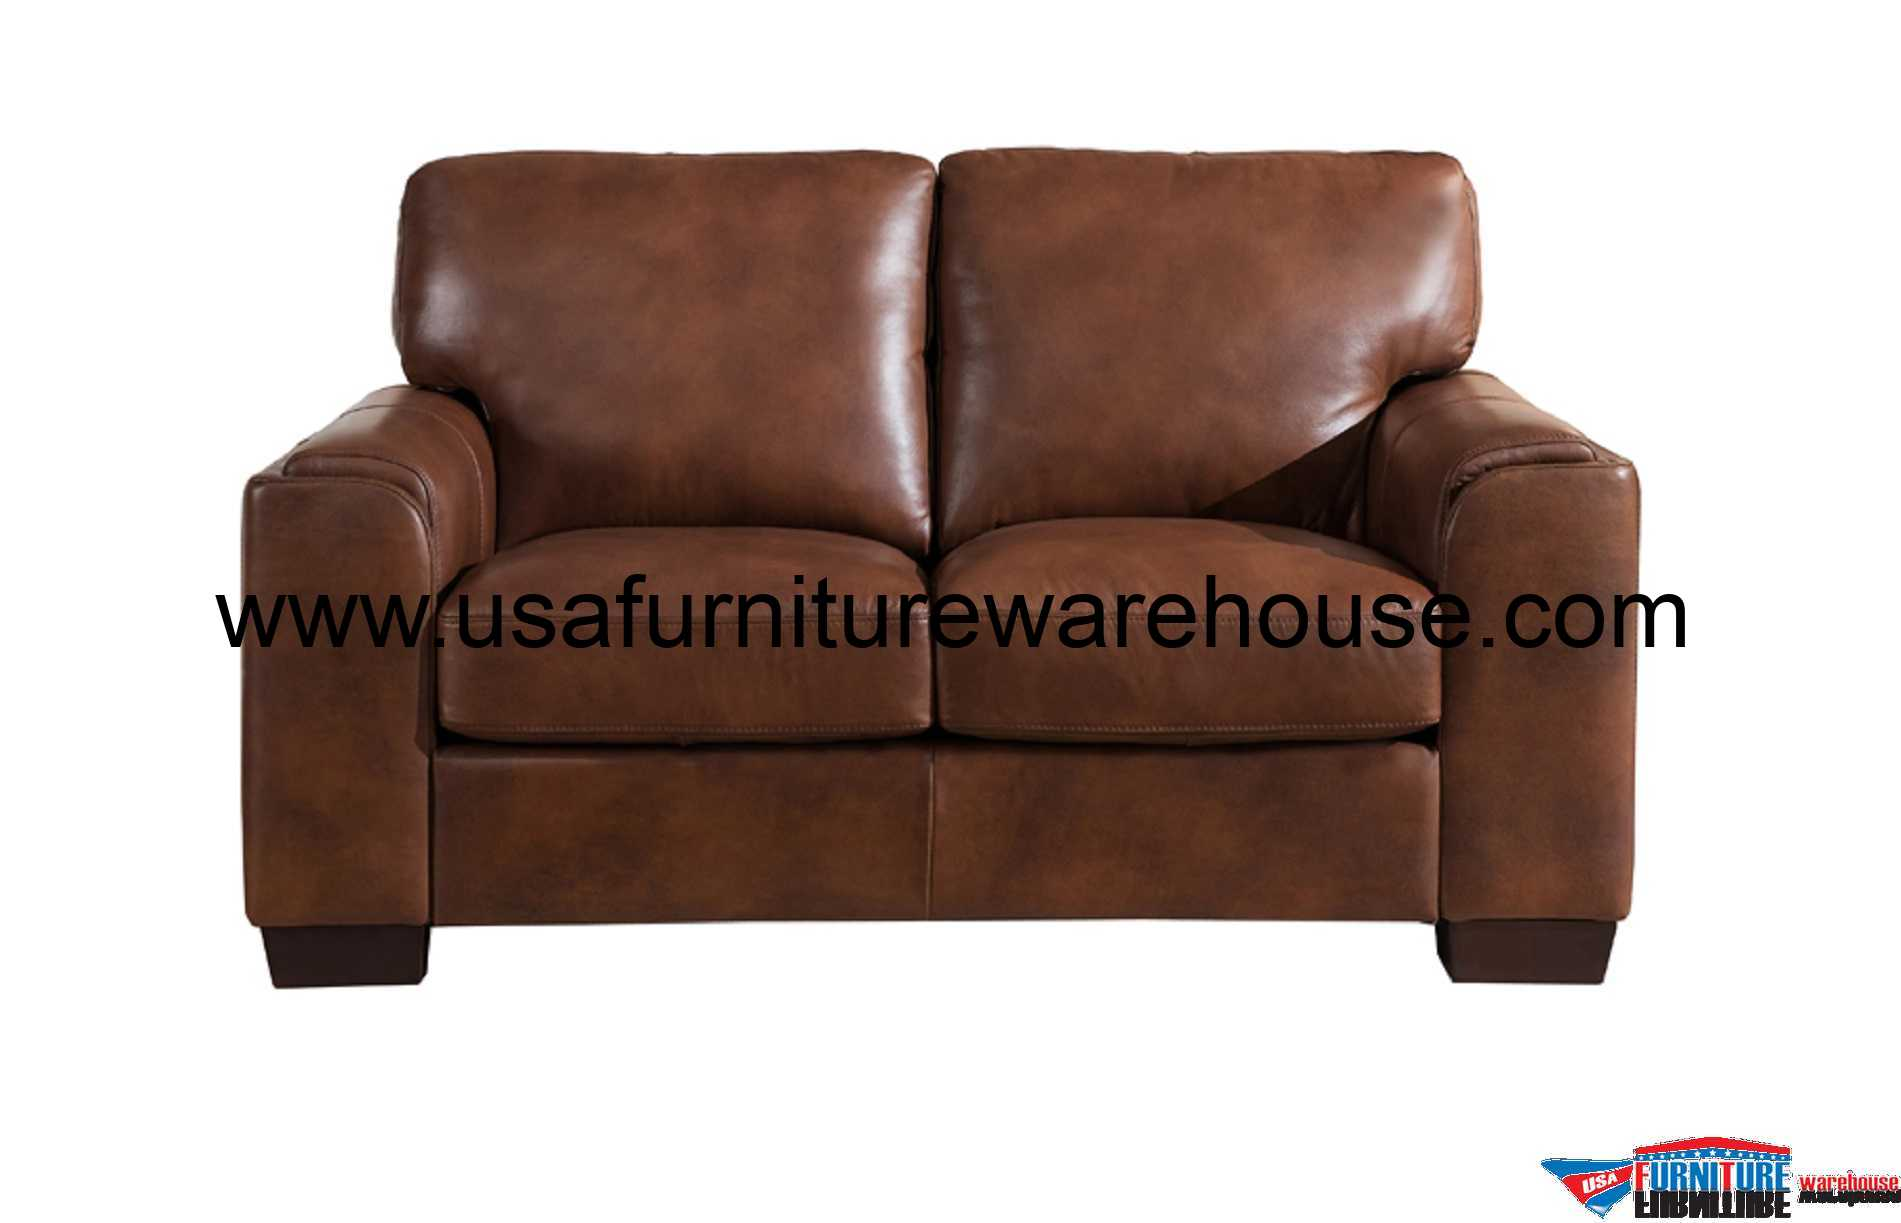 Suzanne Full Top Grain Brown Leather Loveseat